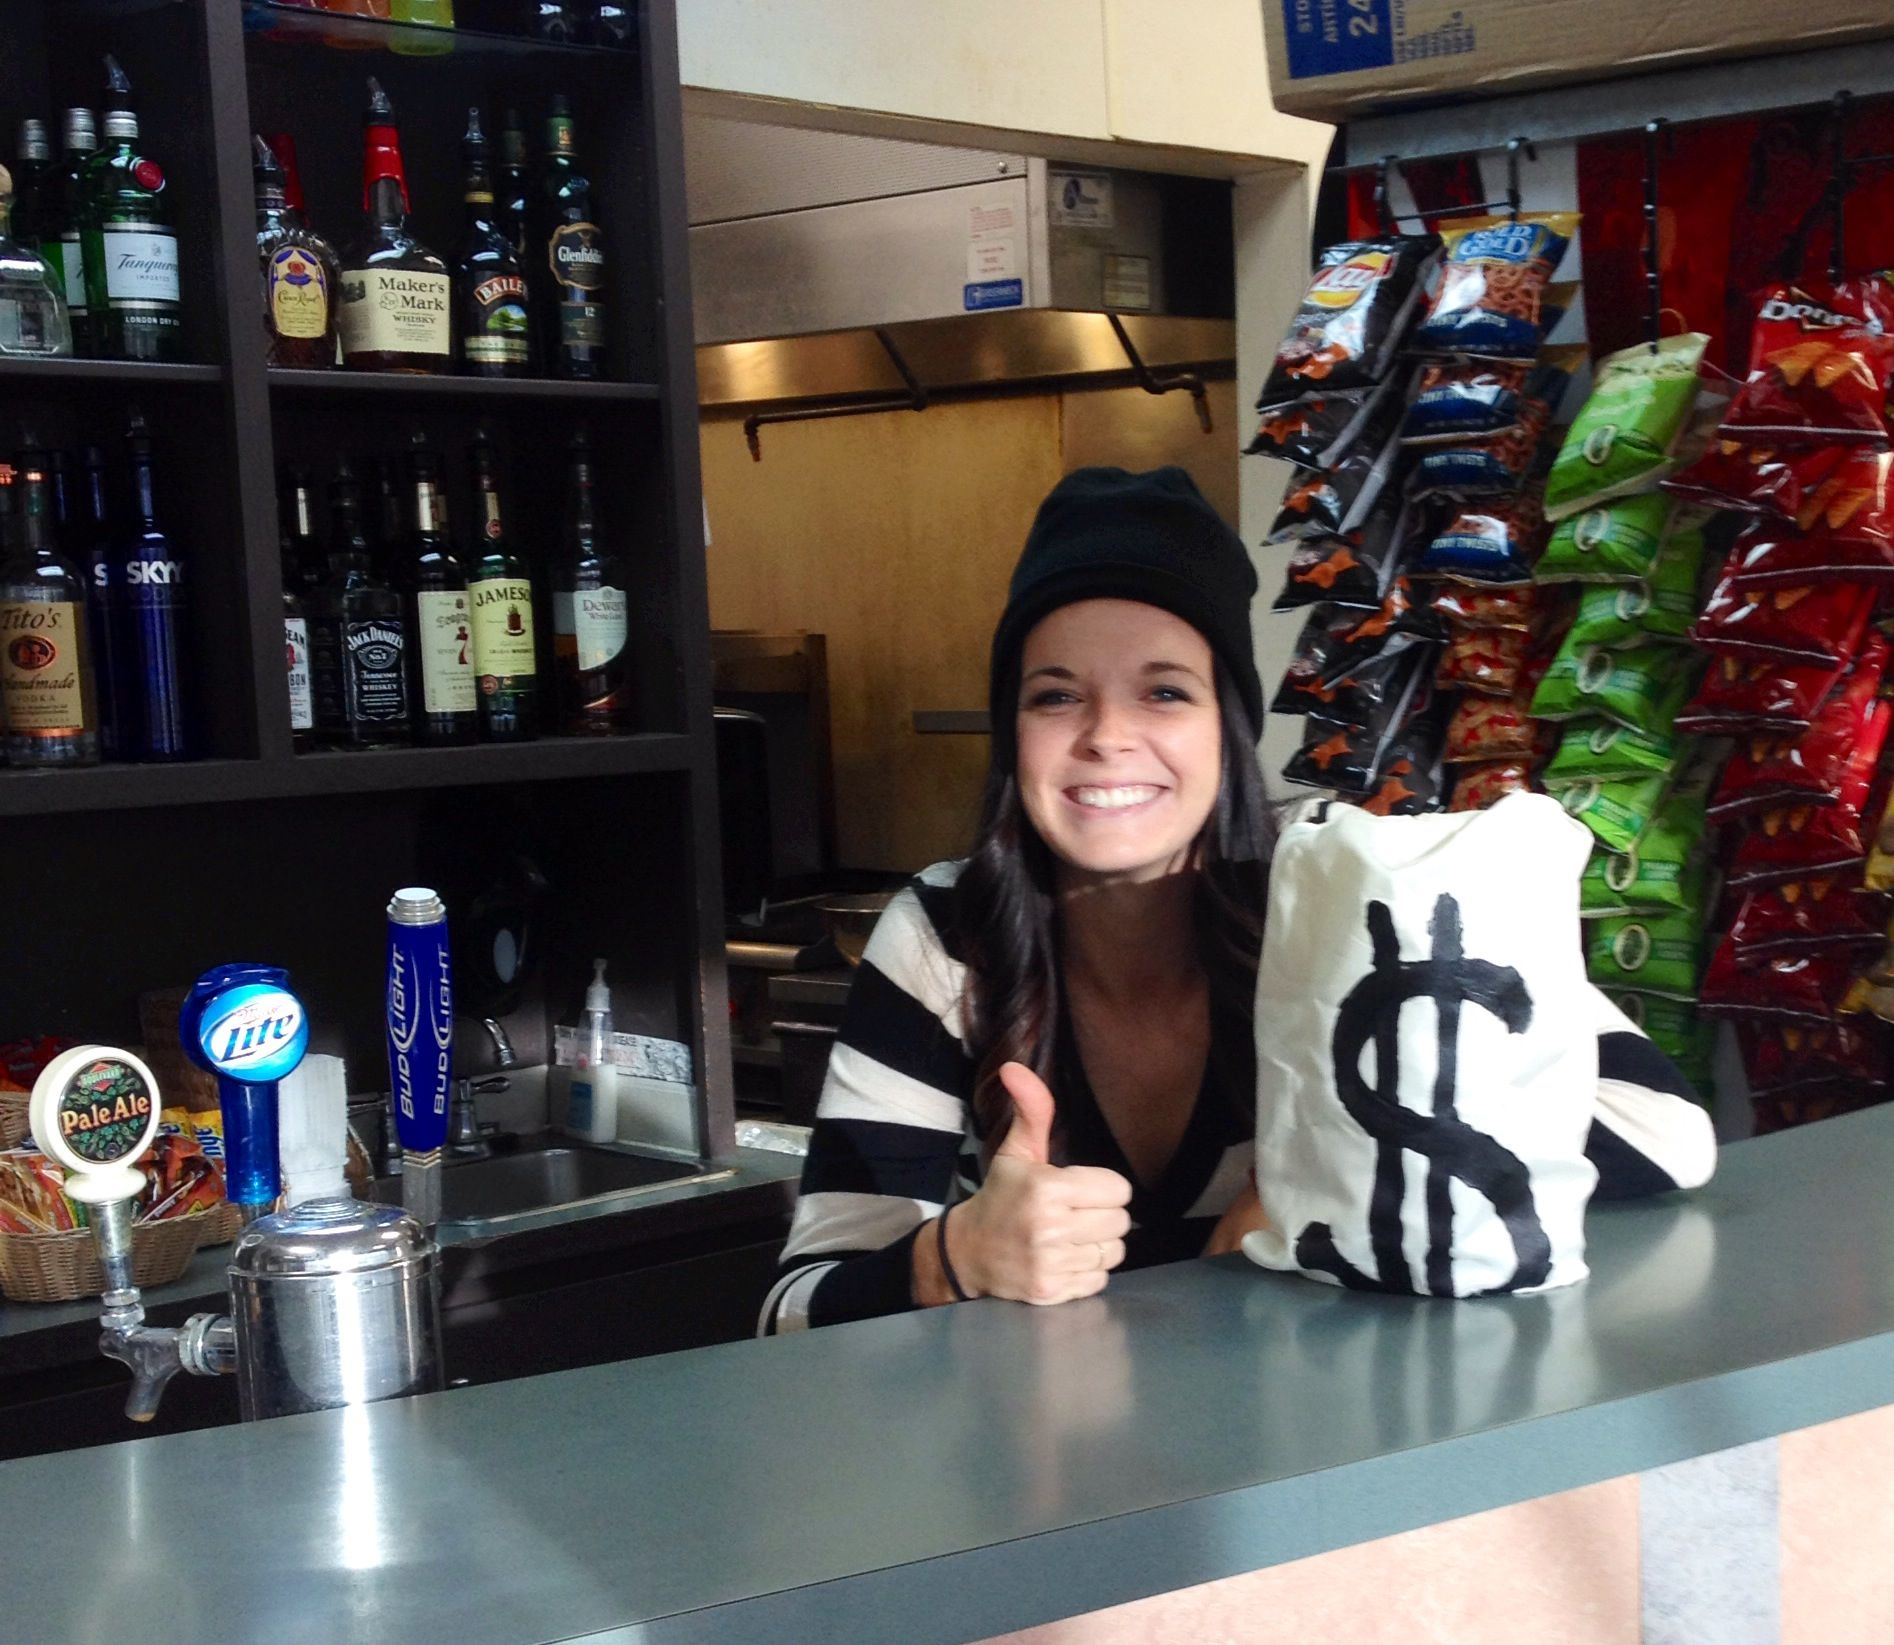 Working at the bar!  Easy Halloween DIY #halloween #costume #halloweendiy #tipjar #robber #givemeyourmoney